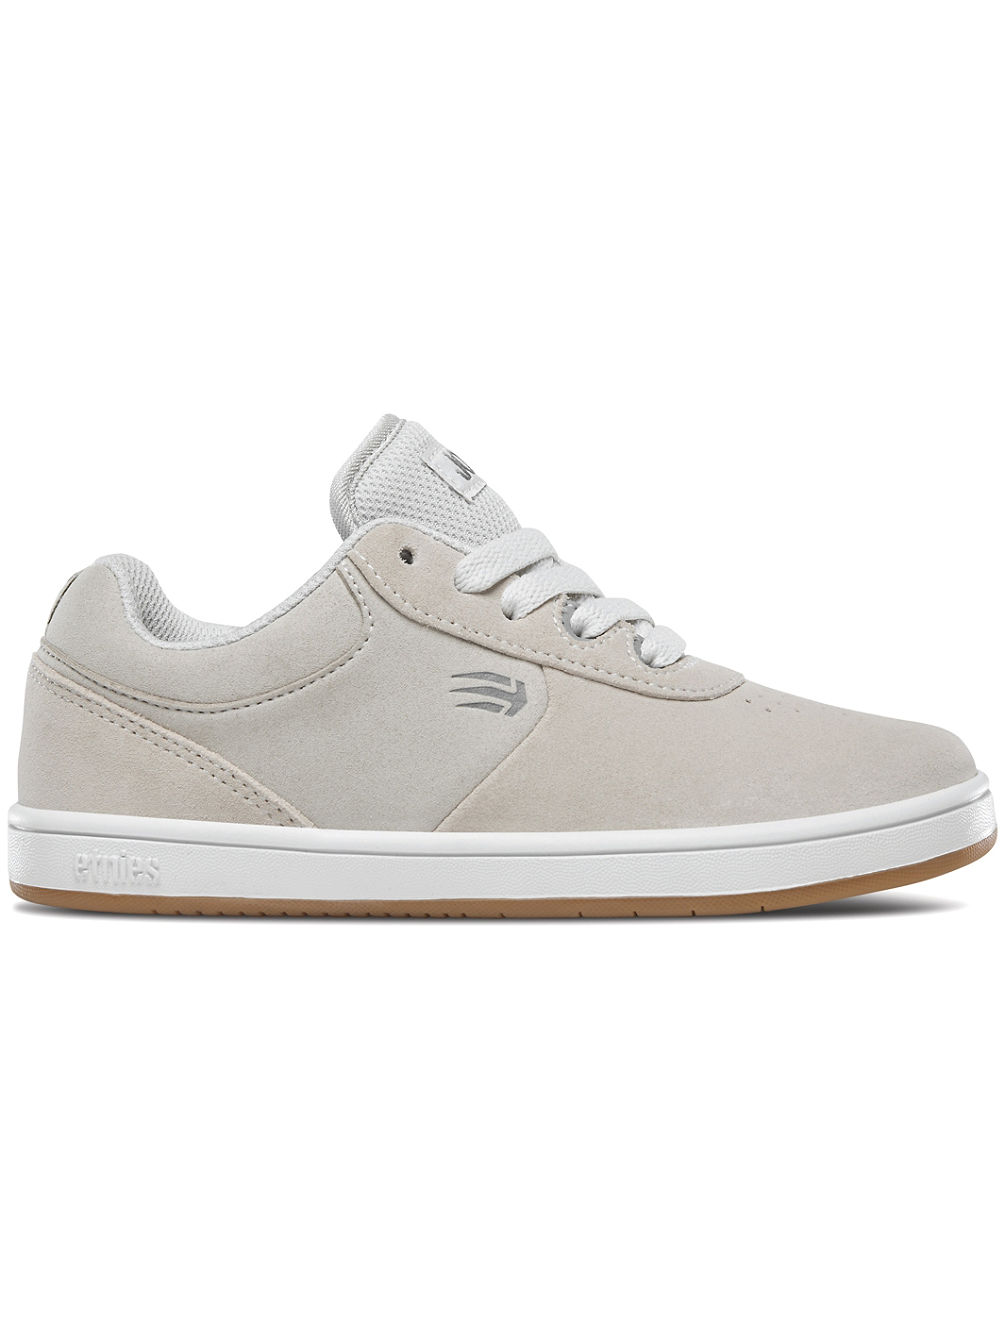 Joslin Skate Shoes